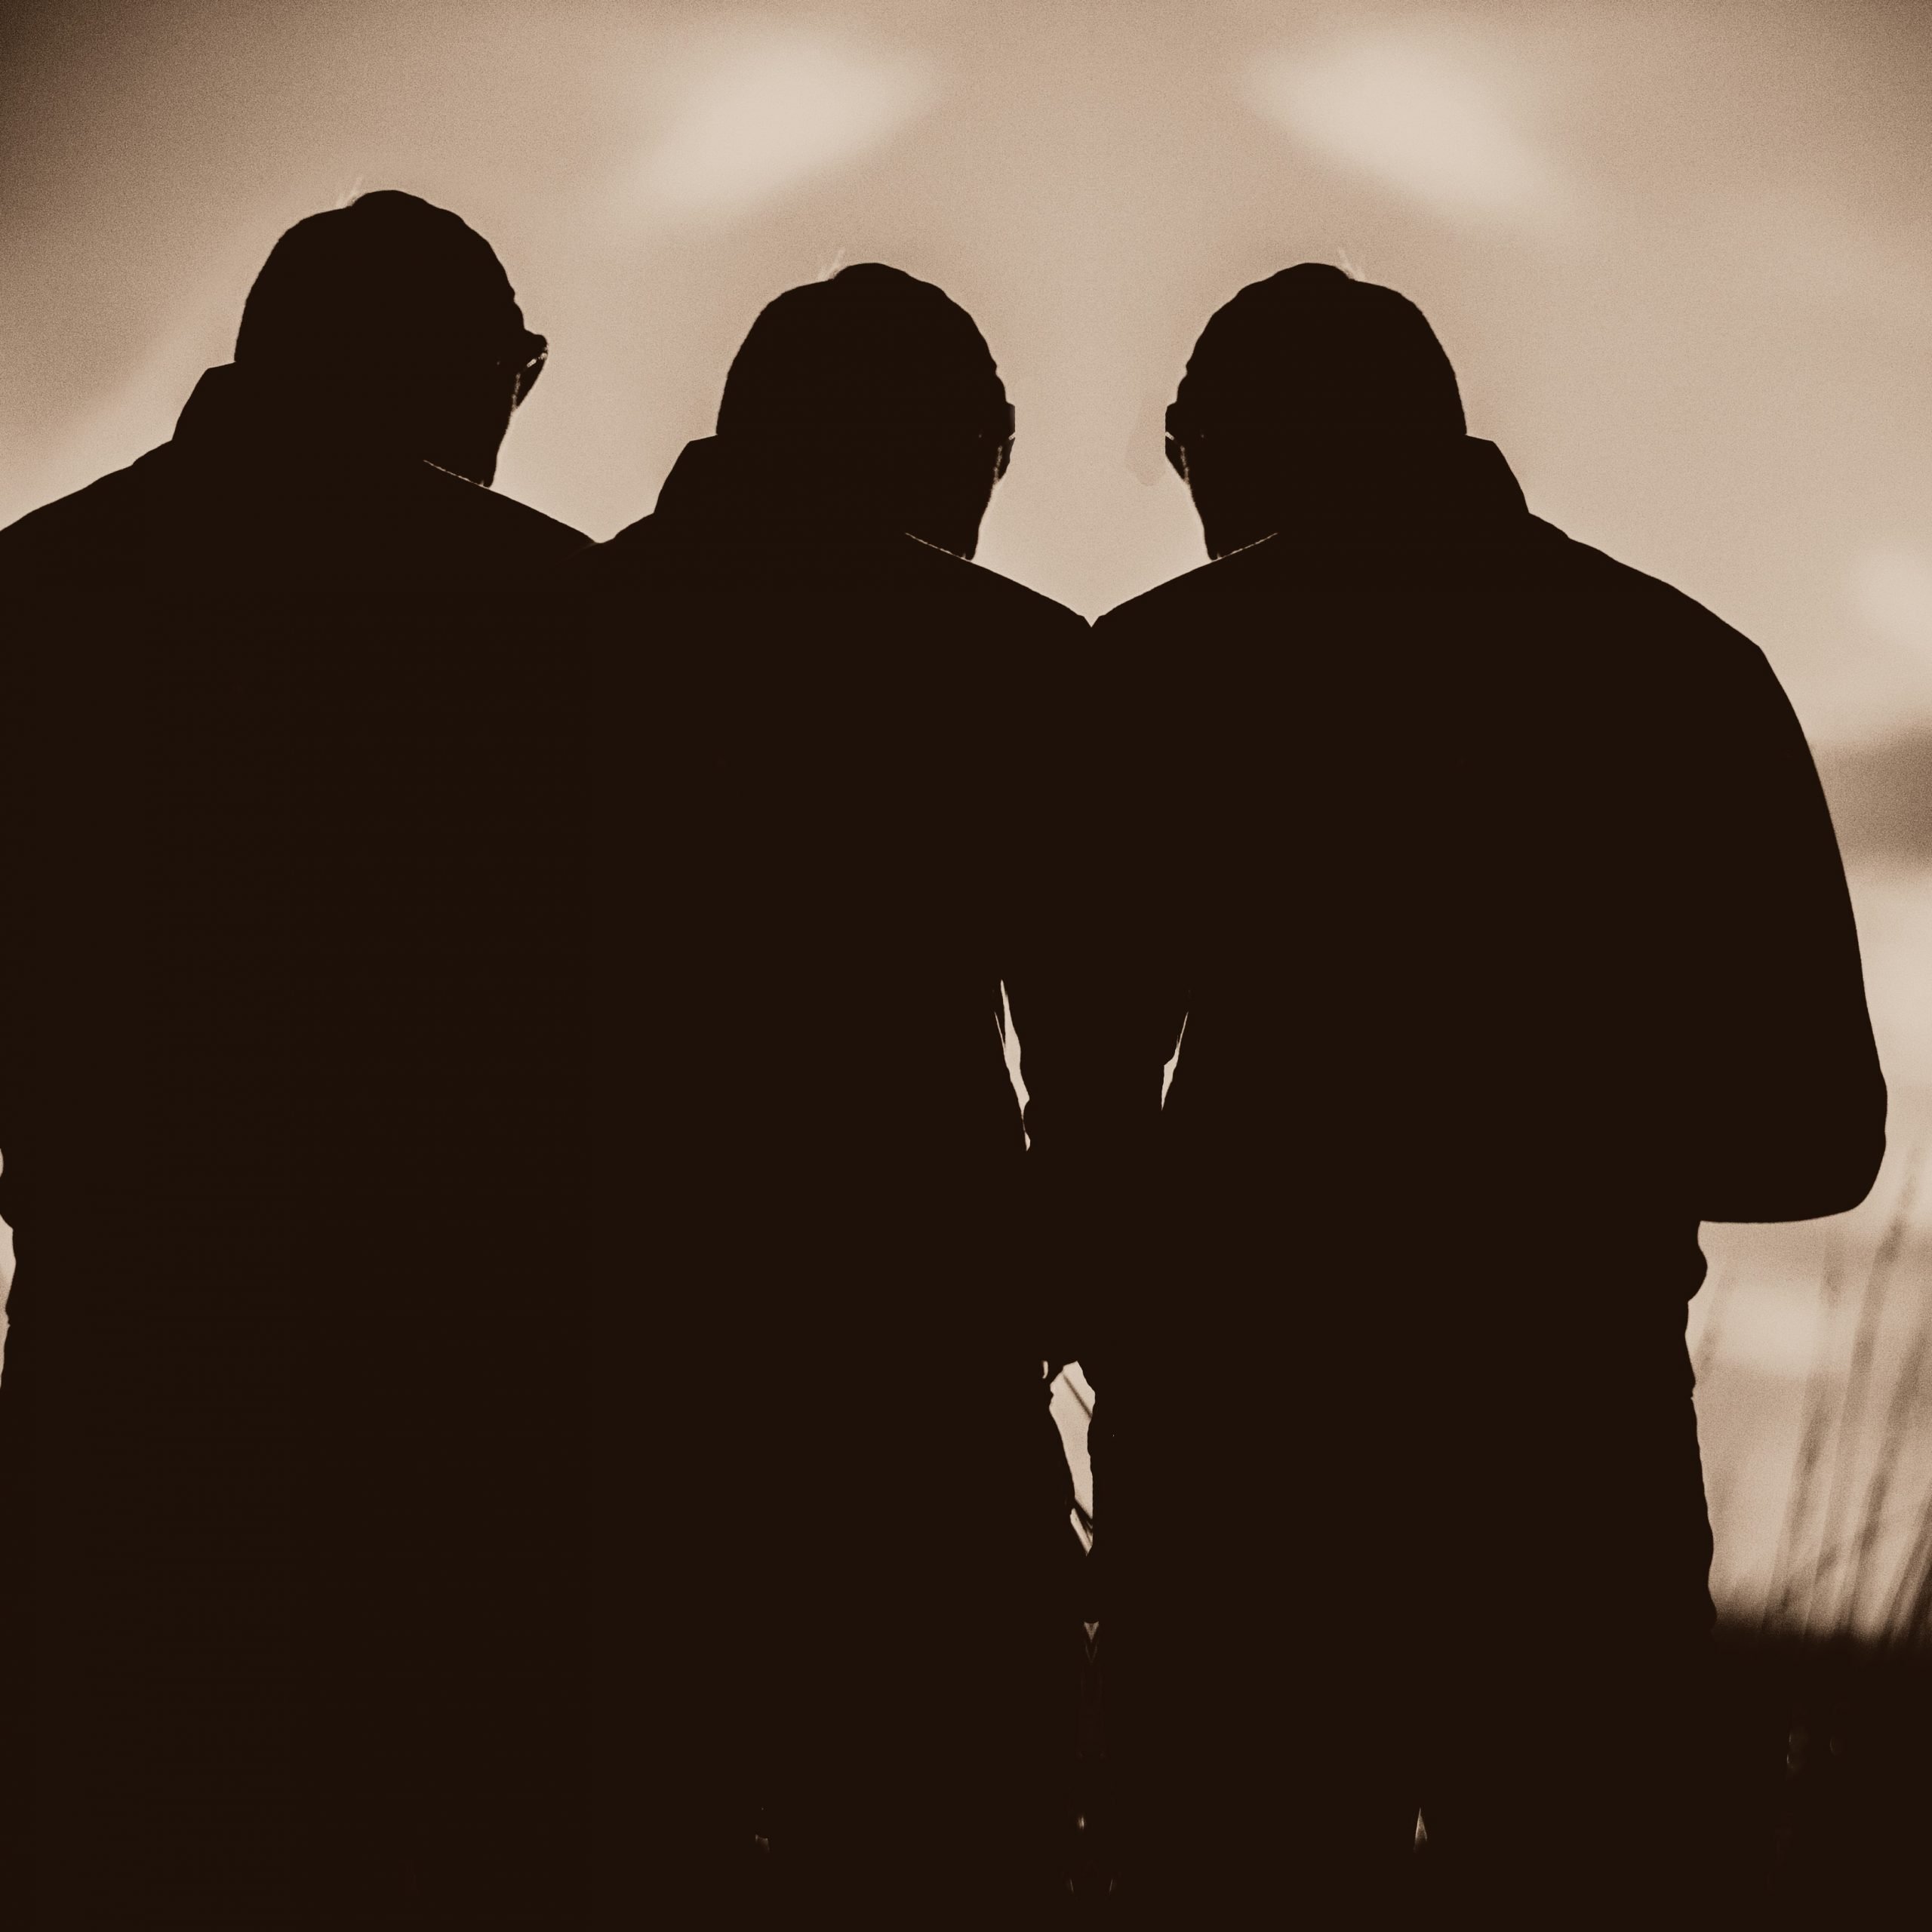 Three Friends Every Youth Pastor Should Have